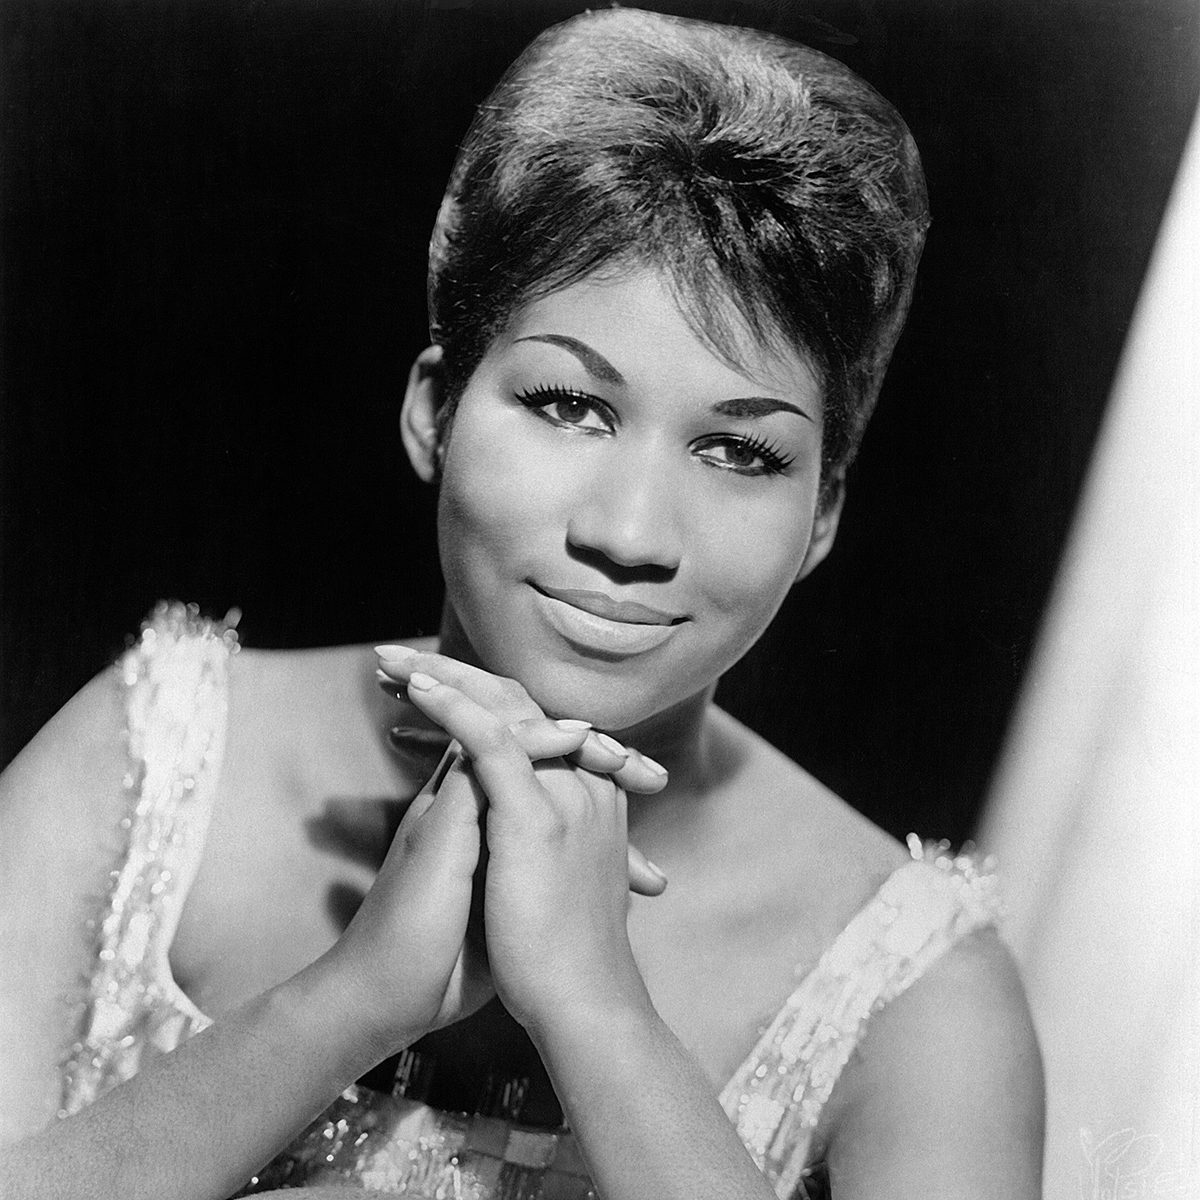 Mandatory Credit: Photo by Everett/Shutterstock (10294149a) ARETHA FRANKLIN, 1964, Columbia Records publicity portrait. Historical Collection